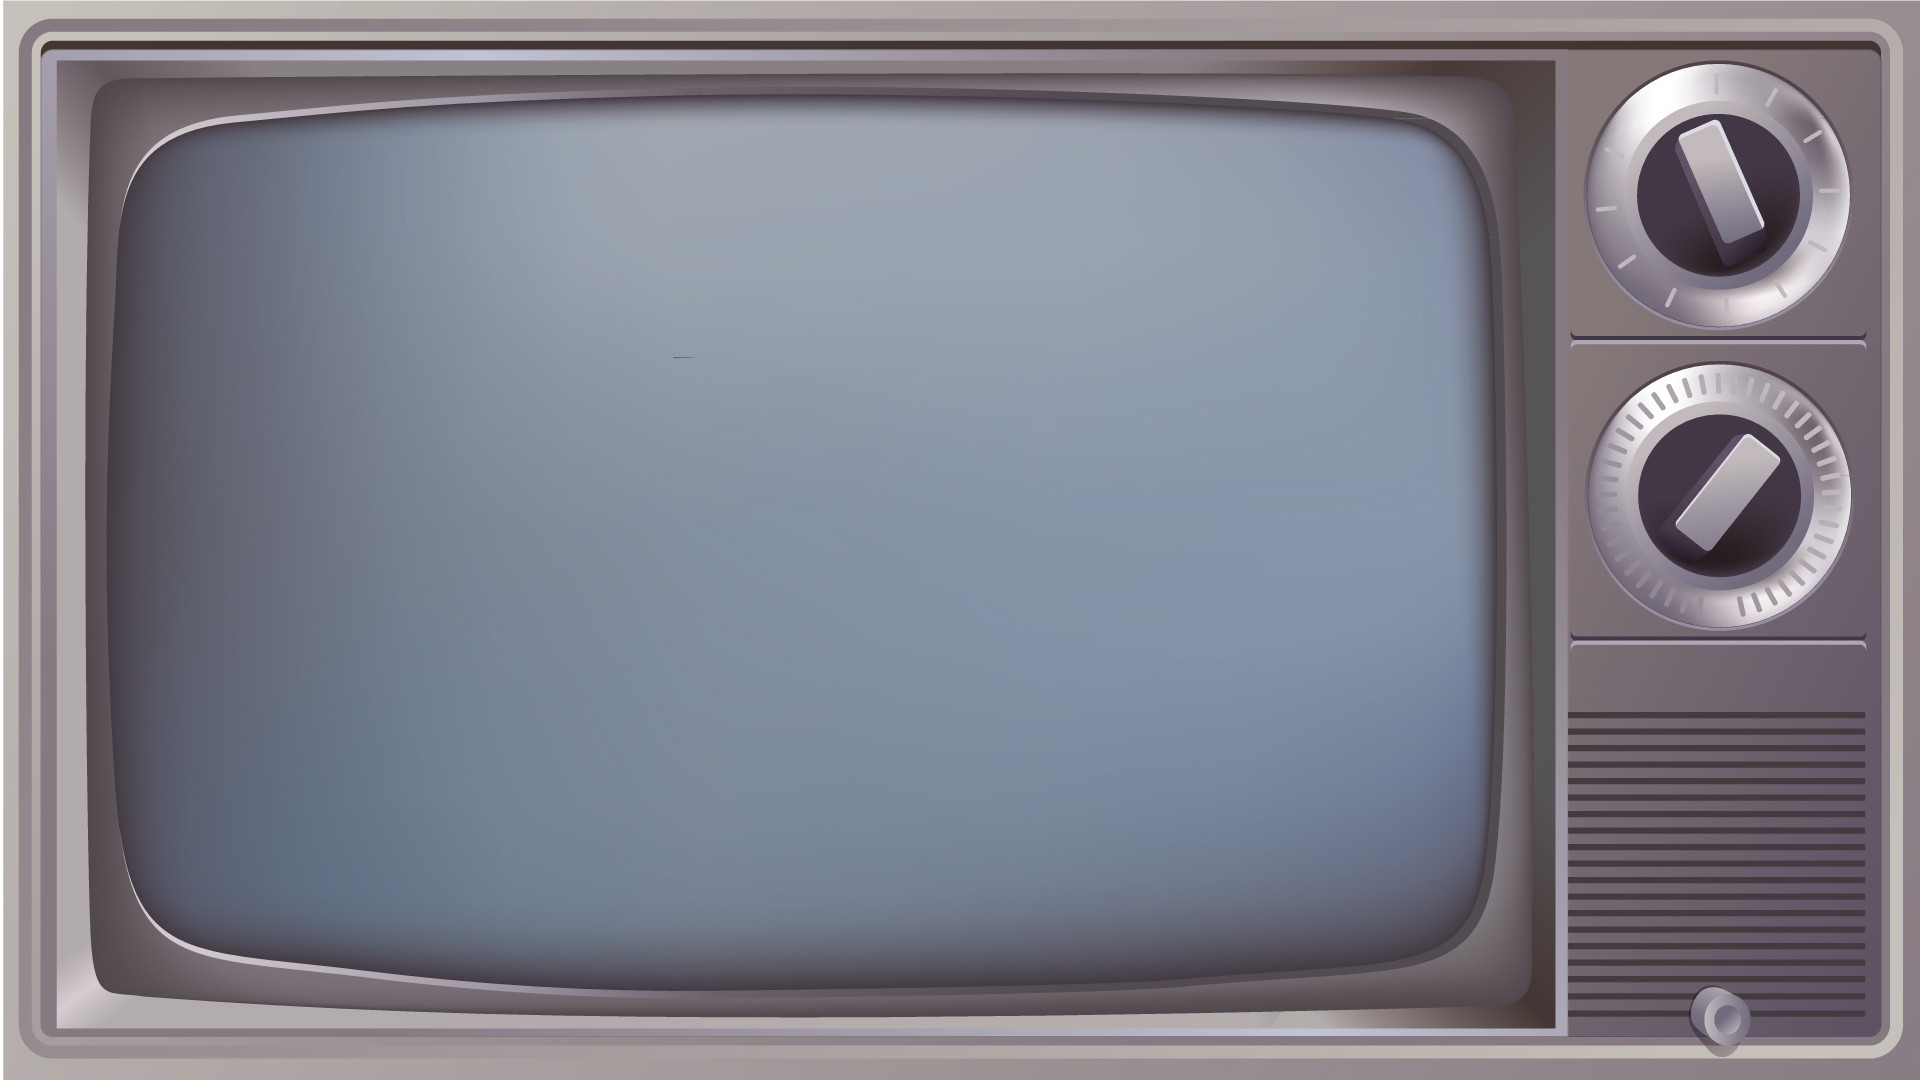 1920x1080 Wallpaper Television